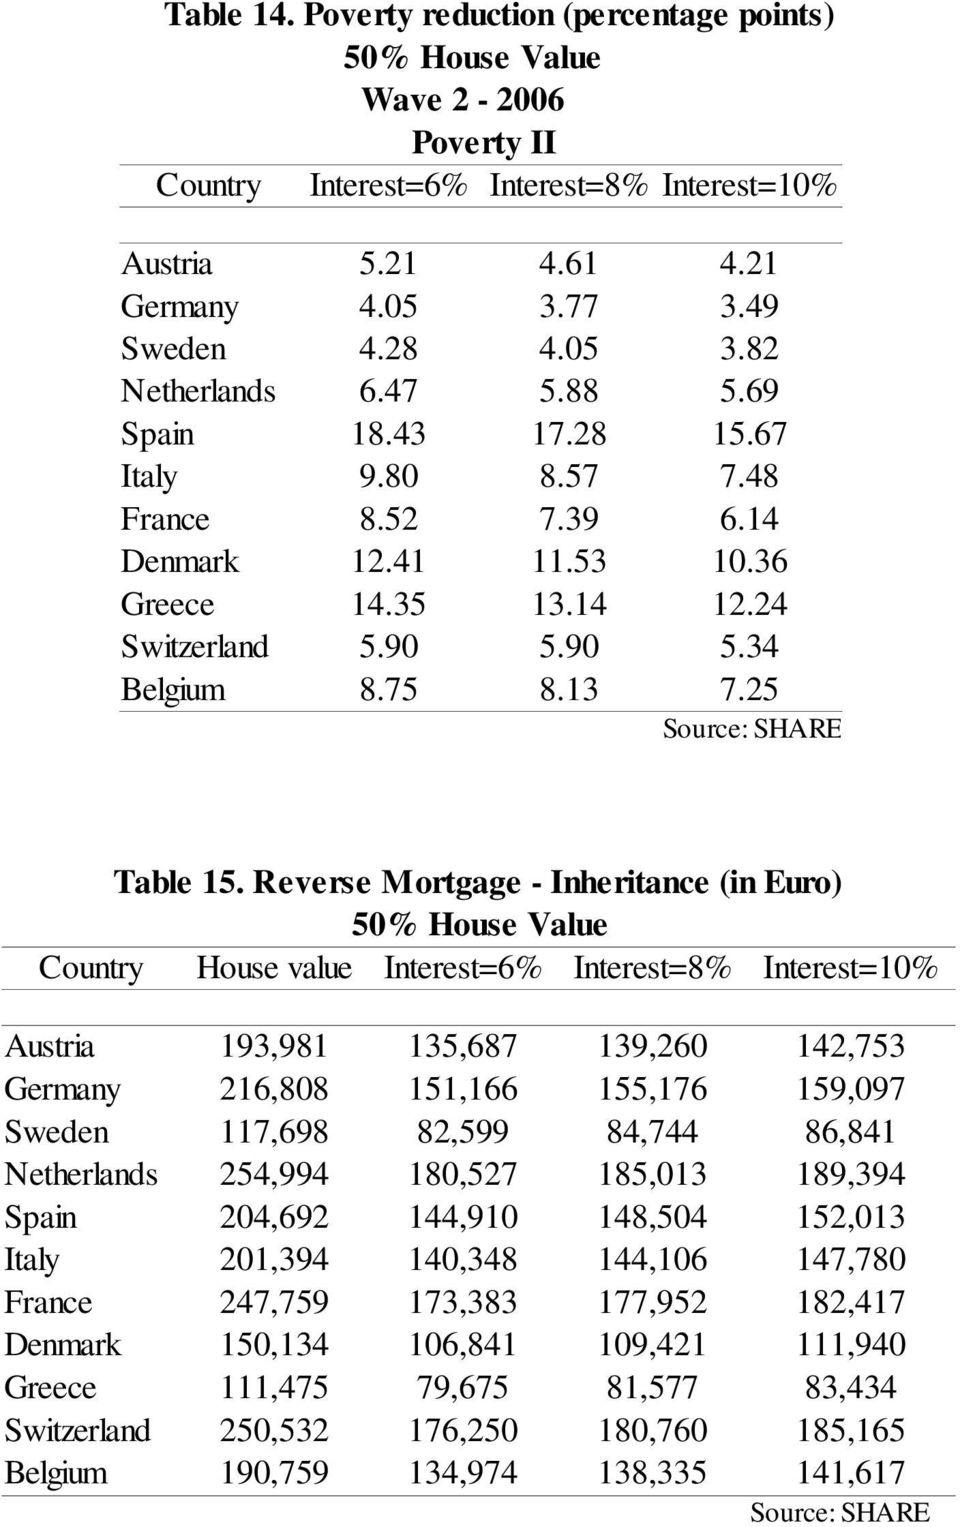 Reverse Mortgage - Inheritance (in Euro) 50% House Value Country House value Interest=6% Interest=8% Interest=10% Austria 193,981 135,687 139,260 142,753 Germany 216,808 151,166 155,176 159,097